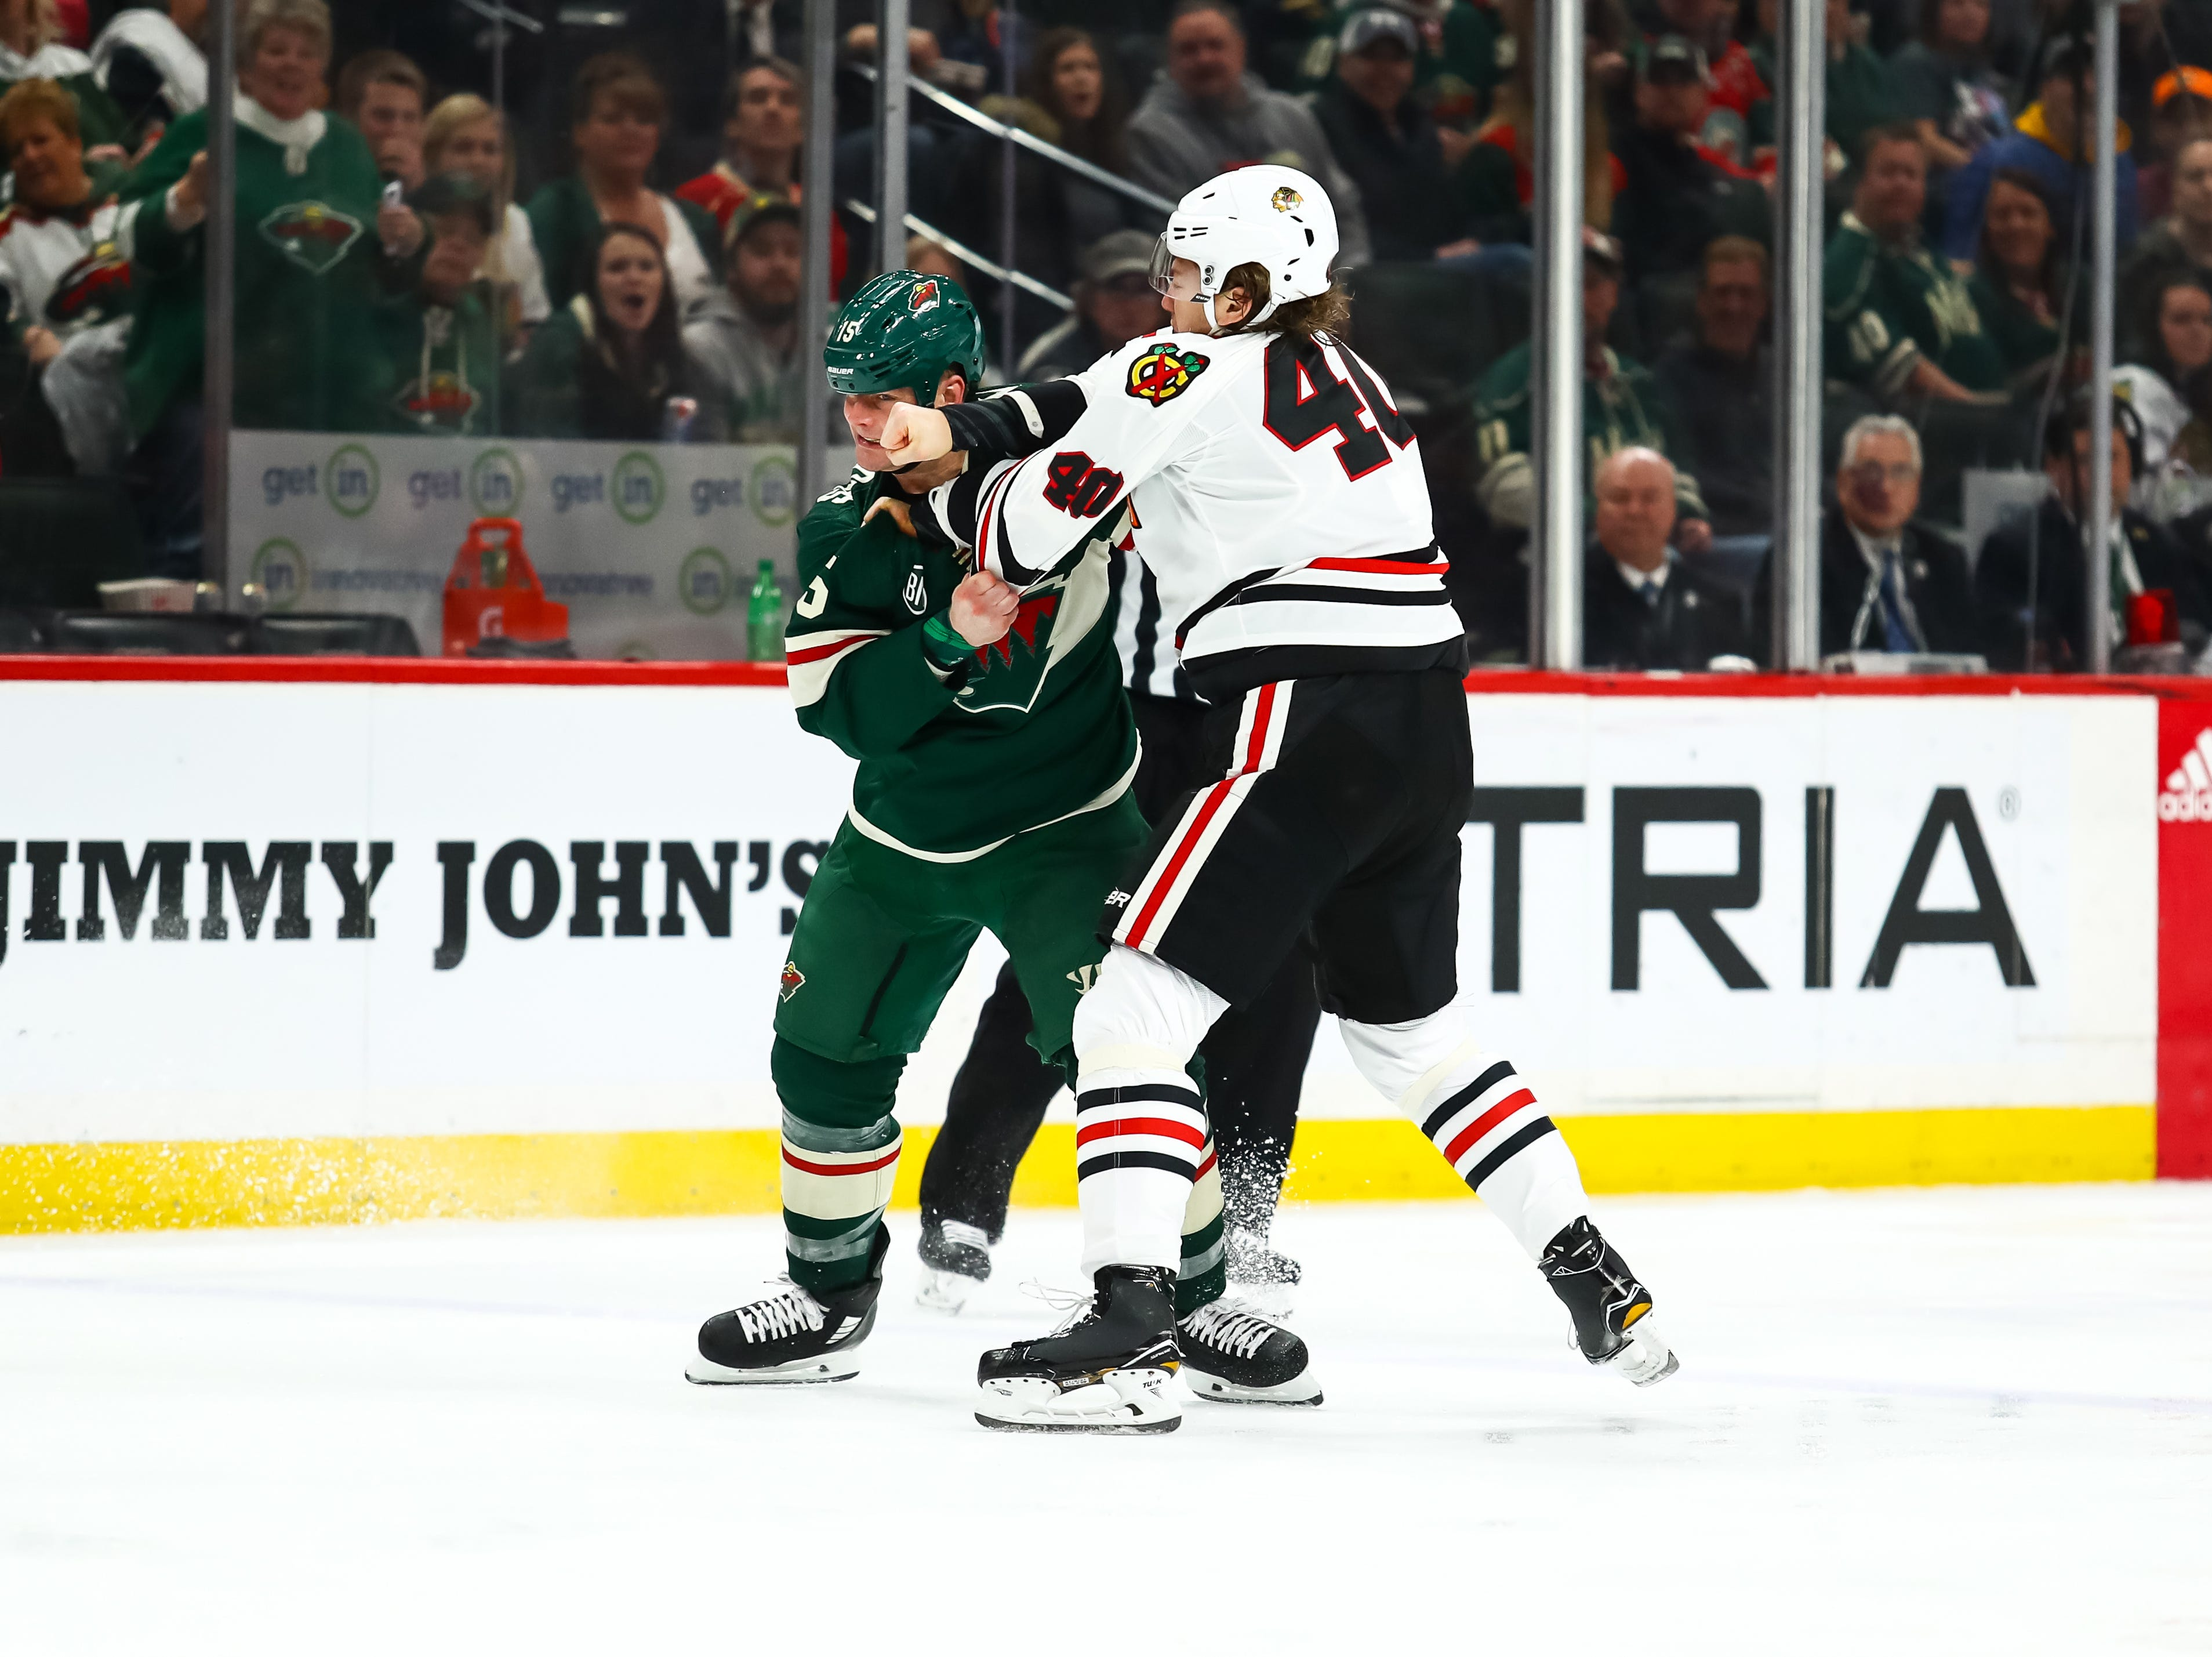 Feb. 2: Minnesota Wild's Matt Hendricks vs. Chicago Blackhawks' John Hayden.